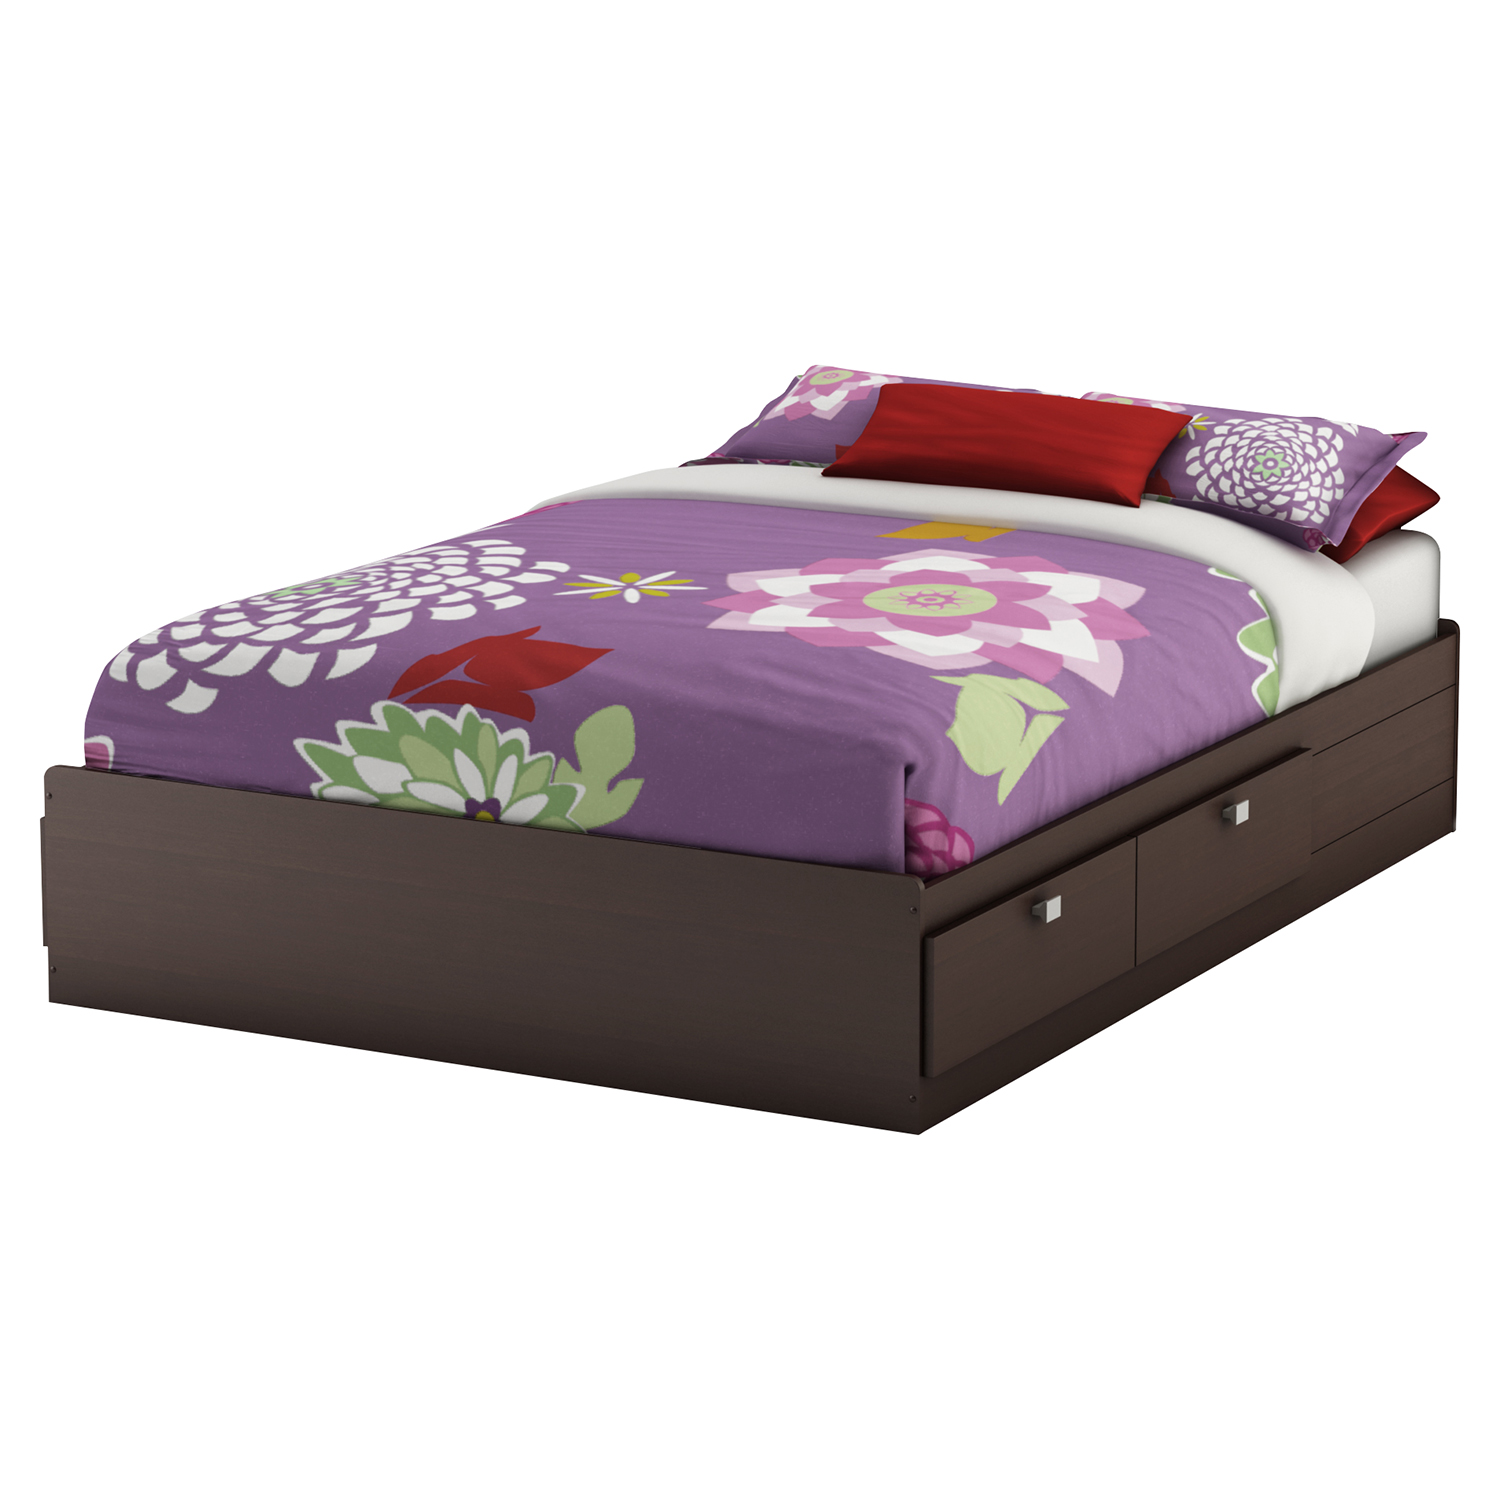 Karma Full Mates Bed - 4 Drawers, Chocolate